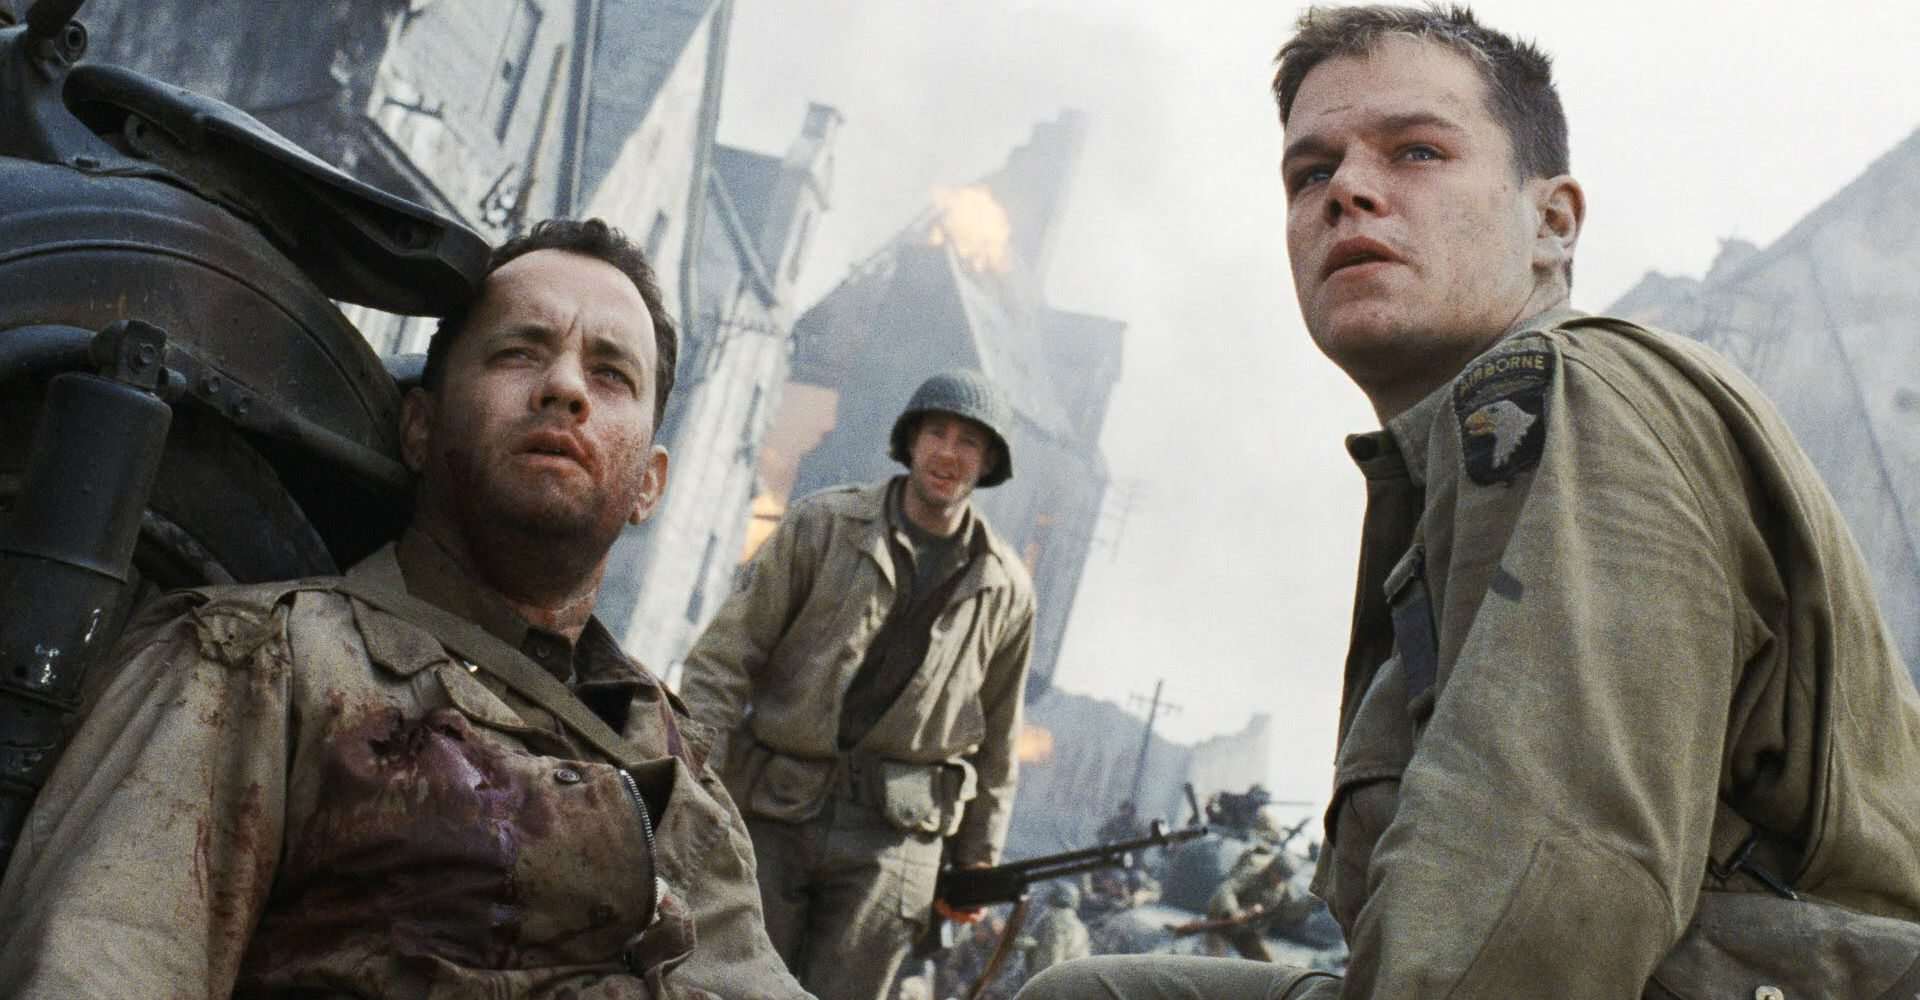 saving private ryan wallpapers high quality download free